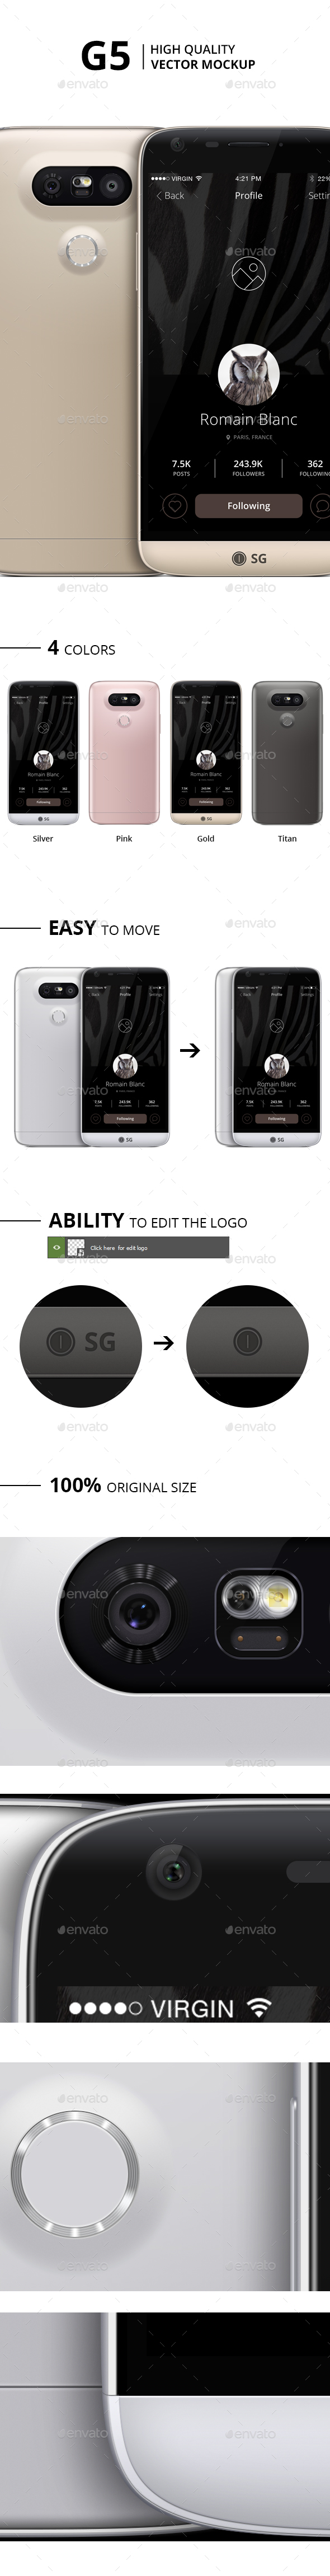 Flat Device Mockup Set - Including Apple Watch (Displays)